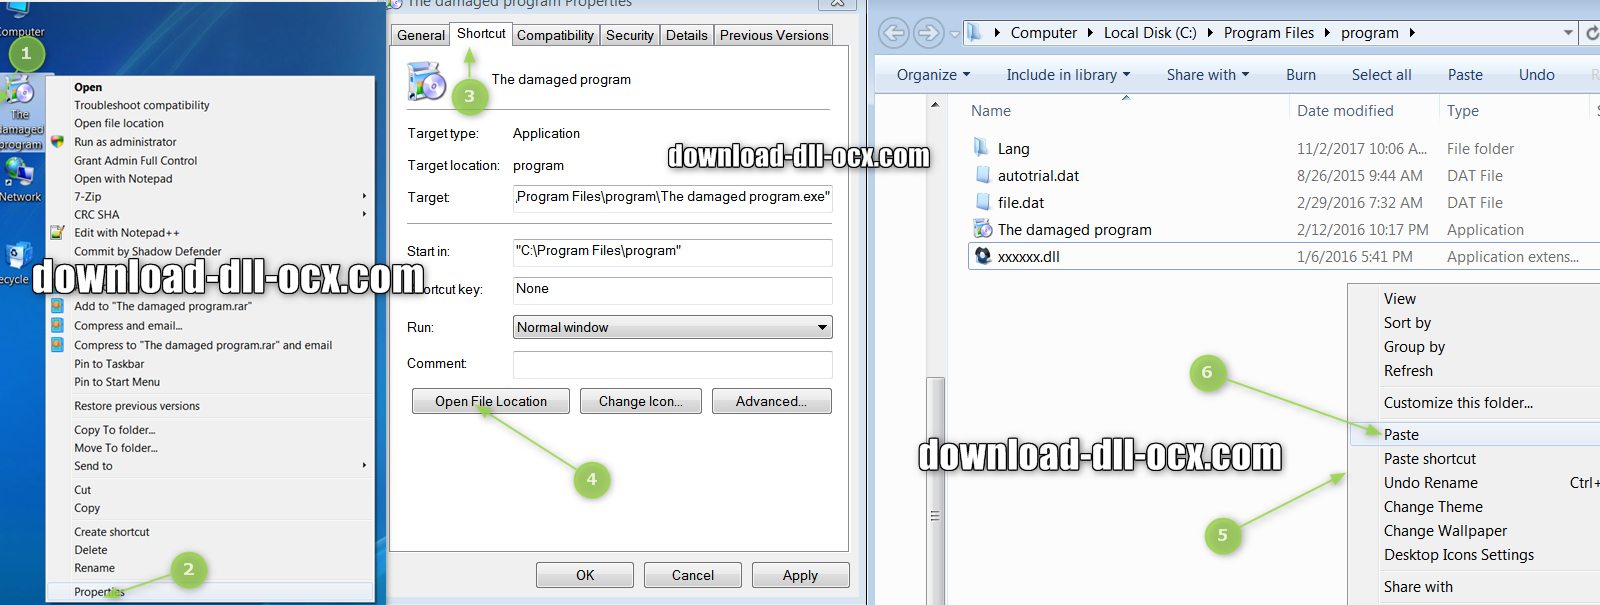 how to install Placewaremi.dll file? for fix missing